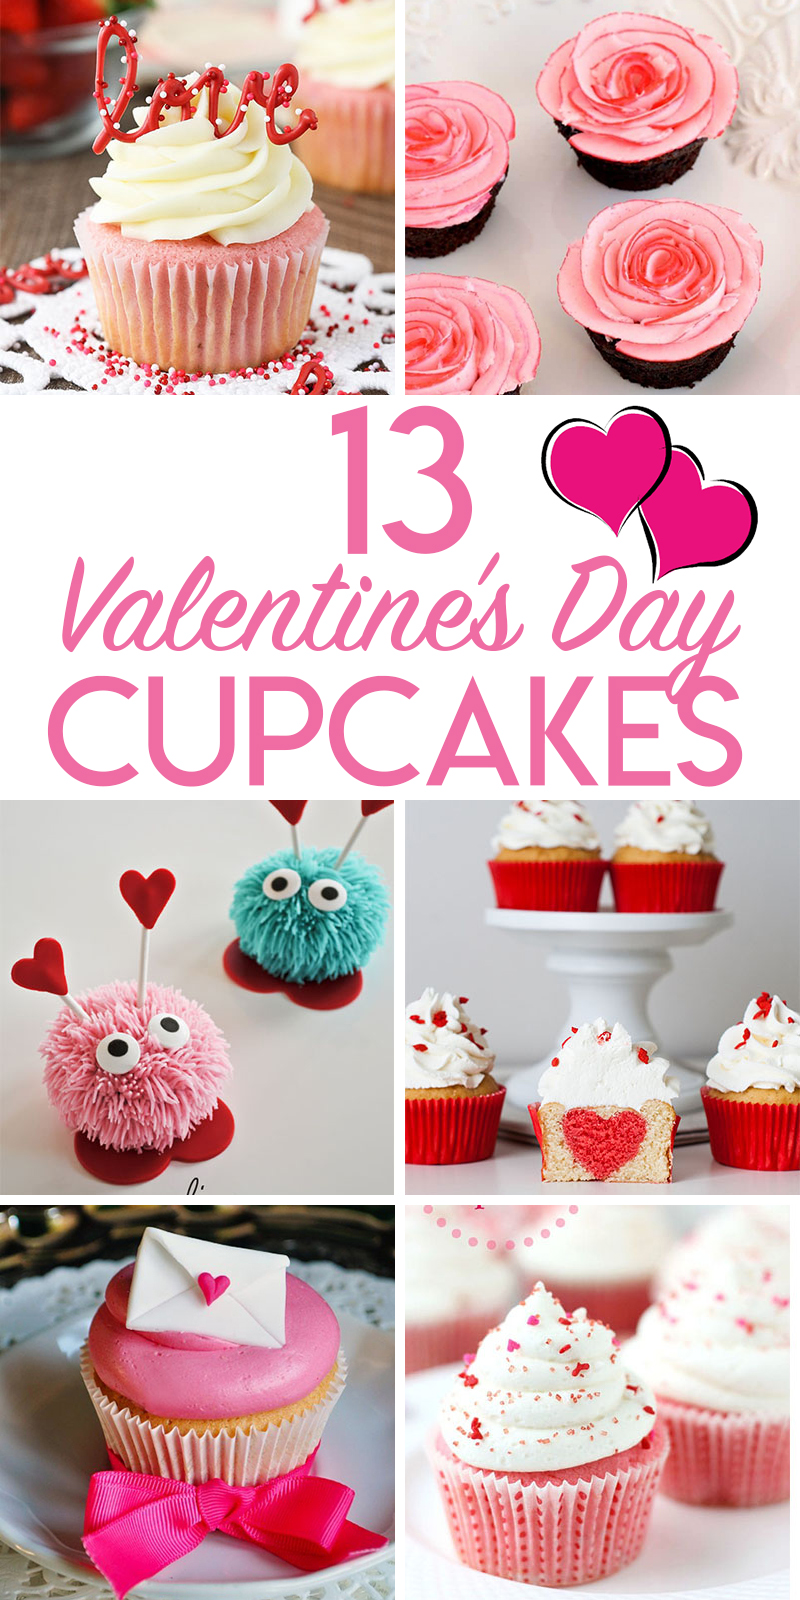 13 lovely valentine's day cupcakes